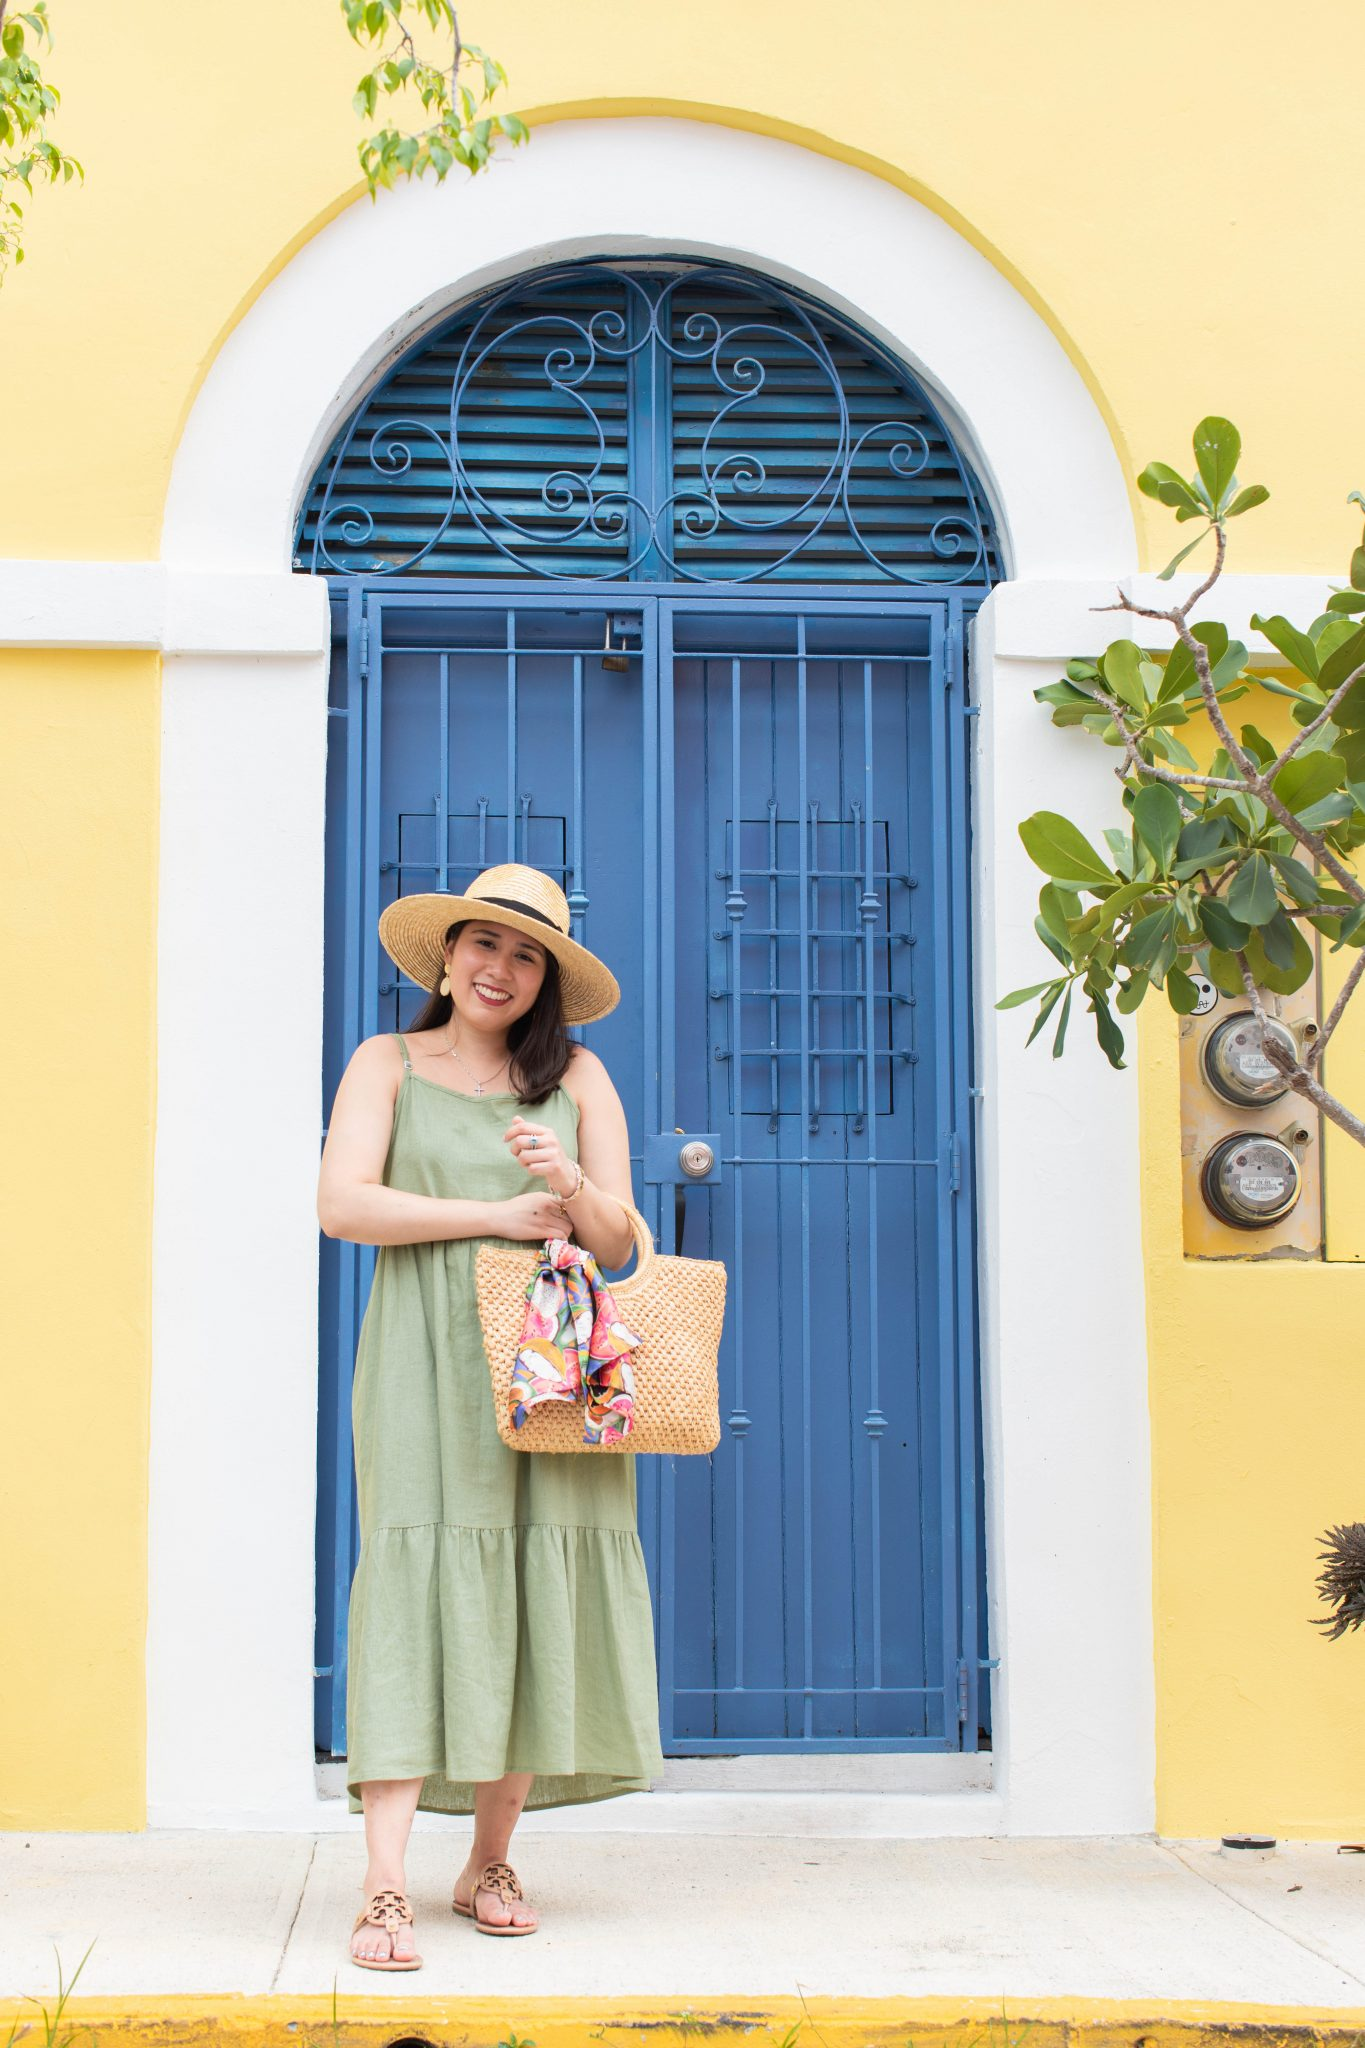 5 Essential Tips To Create Original Content And Grow Your Brand by popular New York influencer blog, Life Laugh Linda: image of a woman standing outside in front of a yellow building with a blue door and wearing a green maxi dress, brown sandals, straw sunhat, and holding a straw bag with a scarf tied on one of the handles.